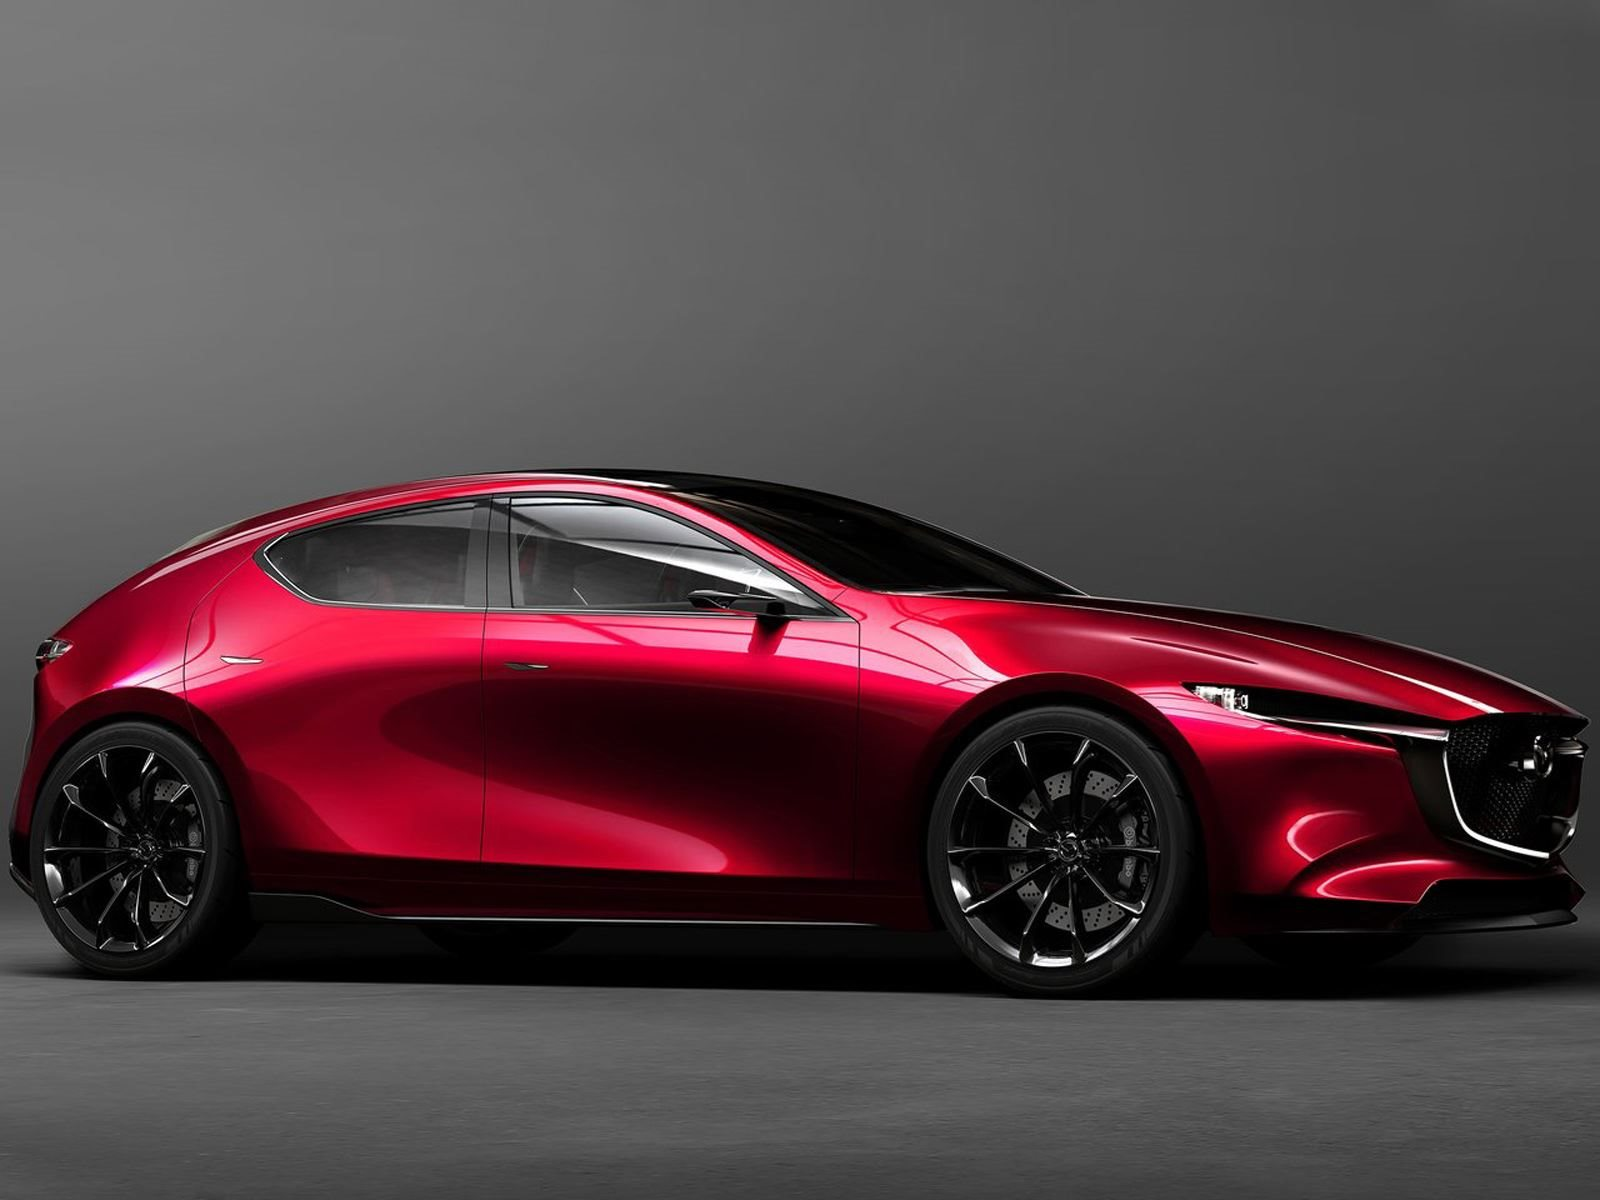 The Next Mazda 3 Will Debut In LA And It's Going To Look Stunning - CarBuzz